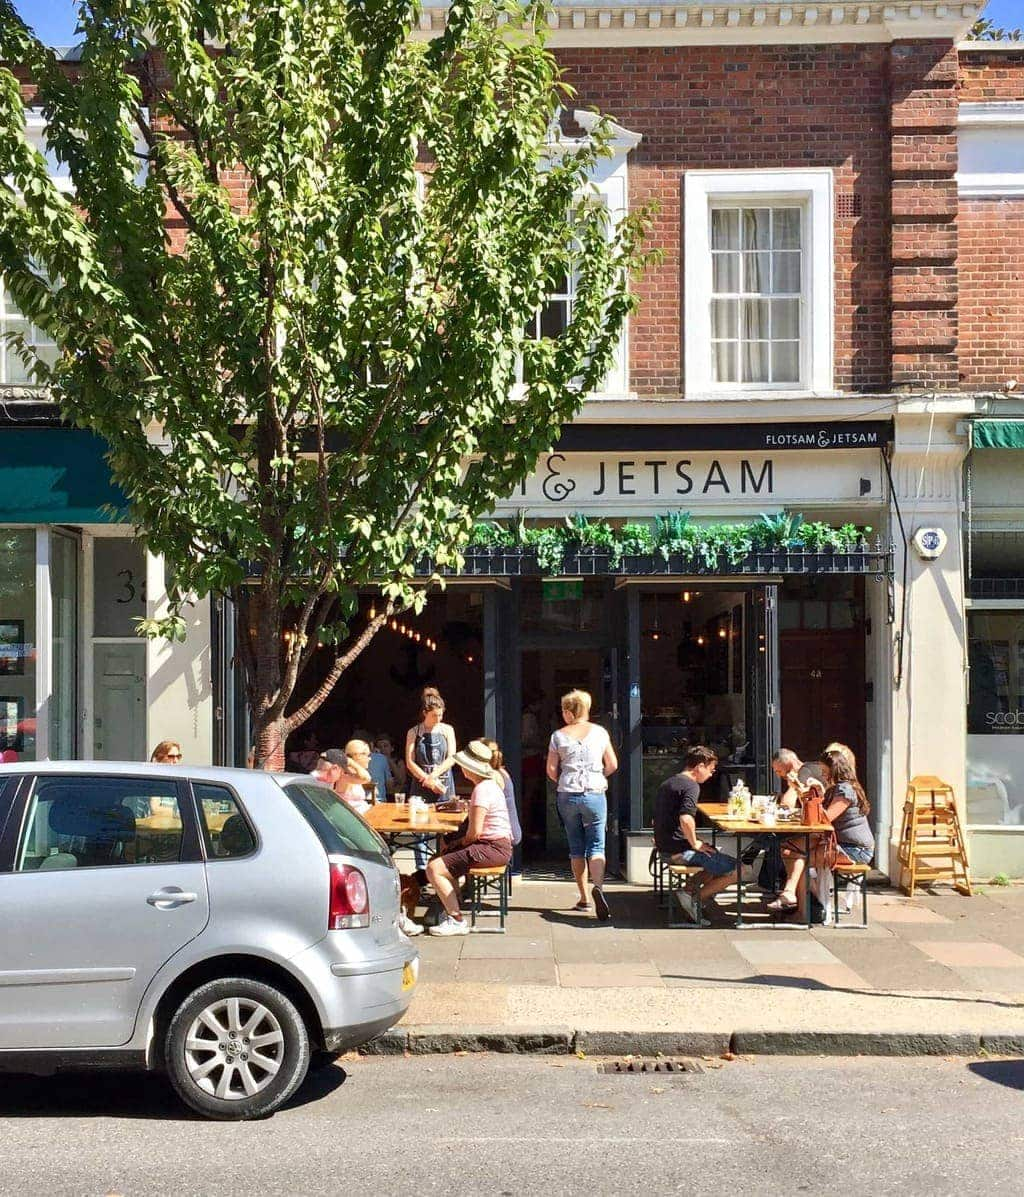 Flotsam & Jetsem - #365LDNCafes - 365 London Cafes in 365 Days By Alexandra Kalinowski